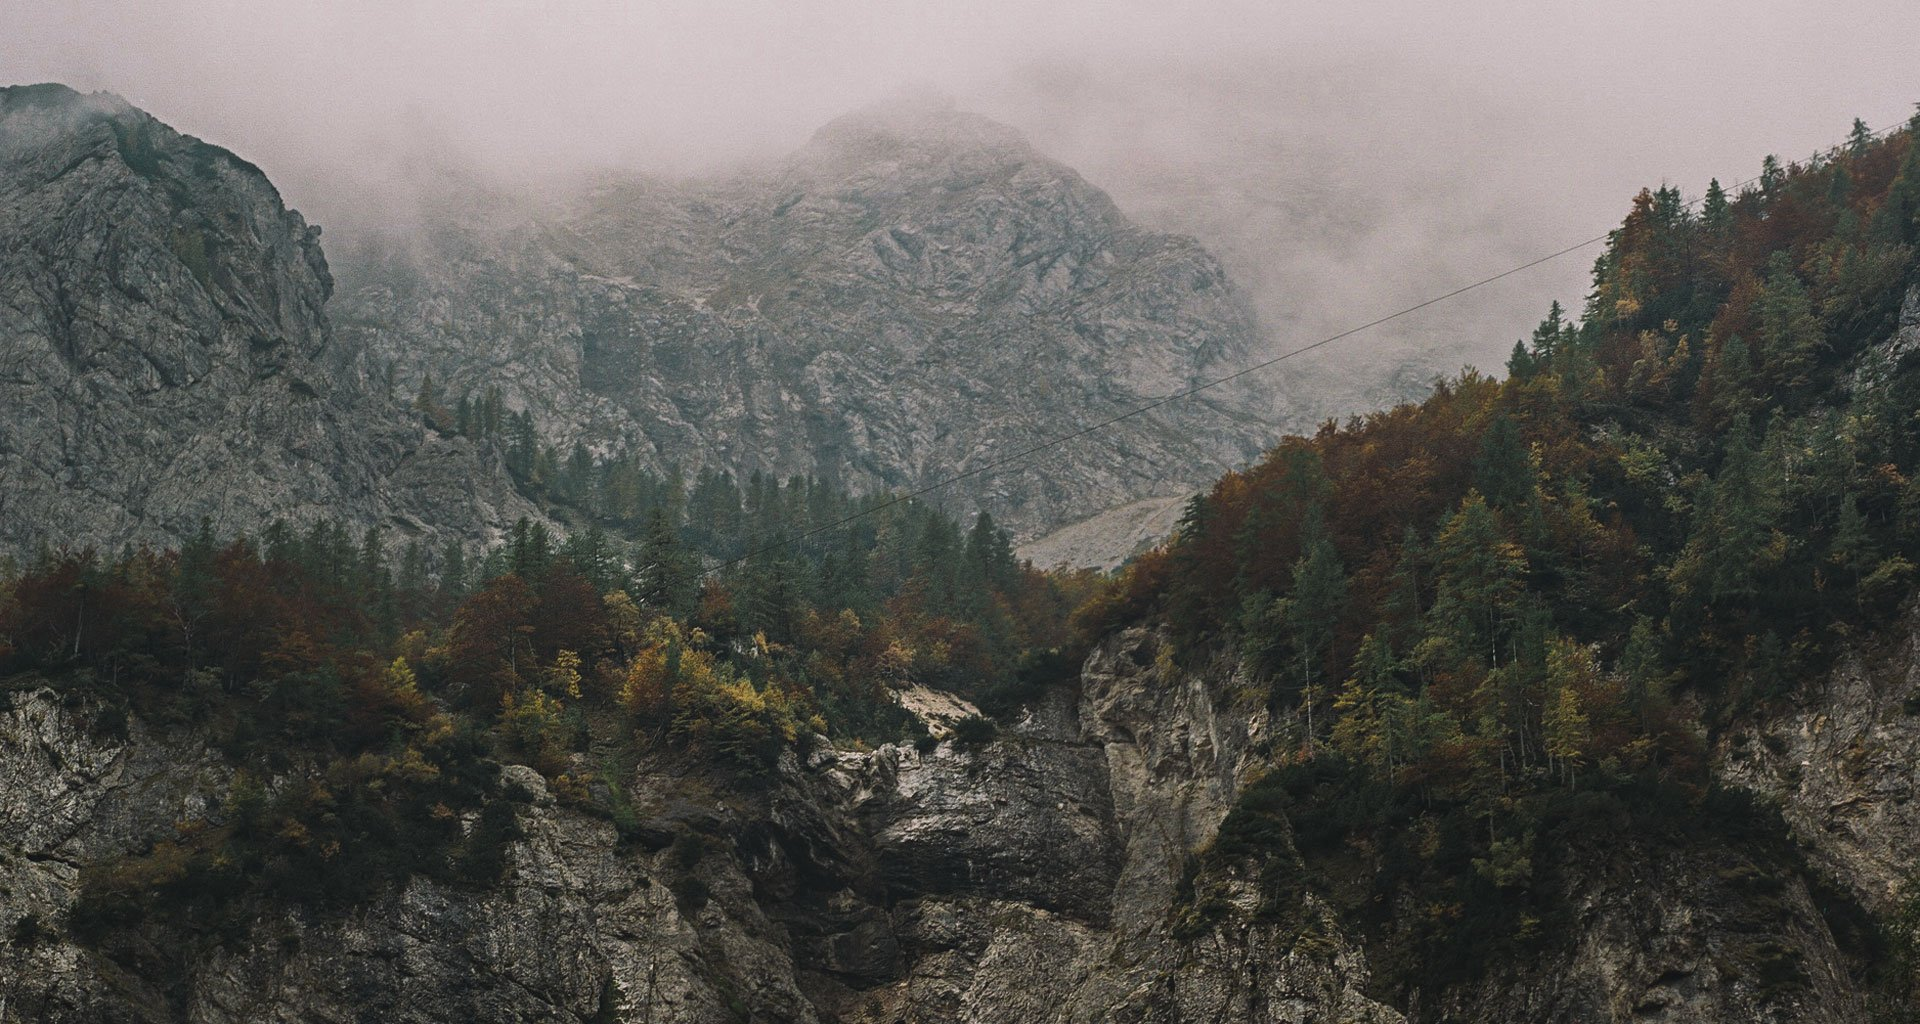 Slovenia's alpine vistas are unmissable, even on misty autumn days